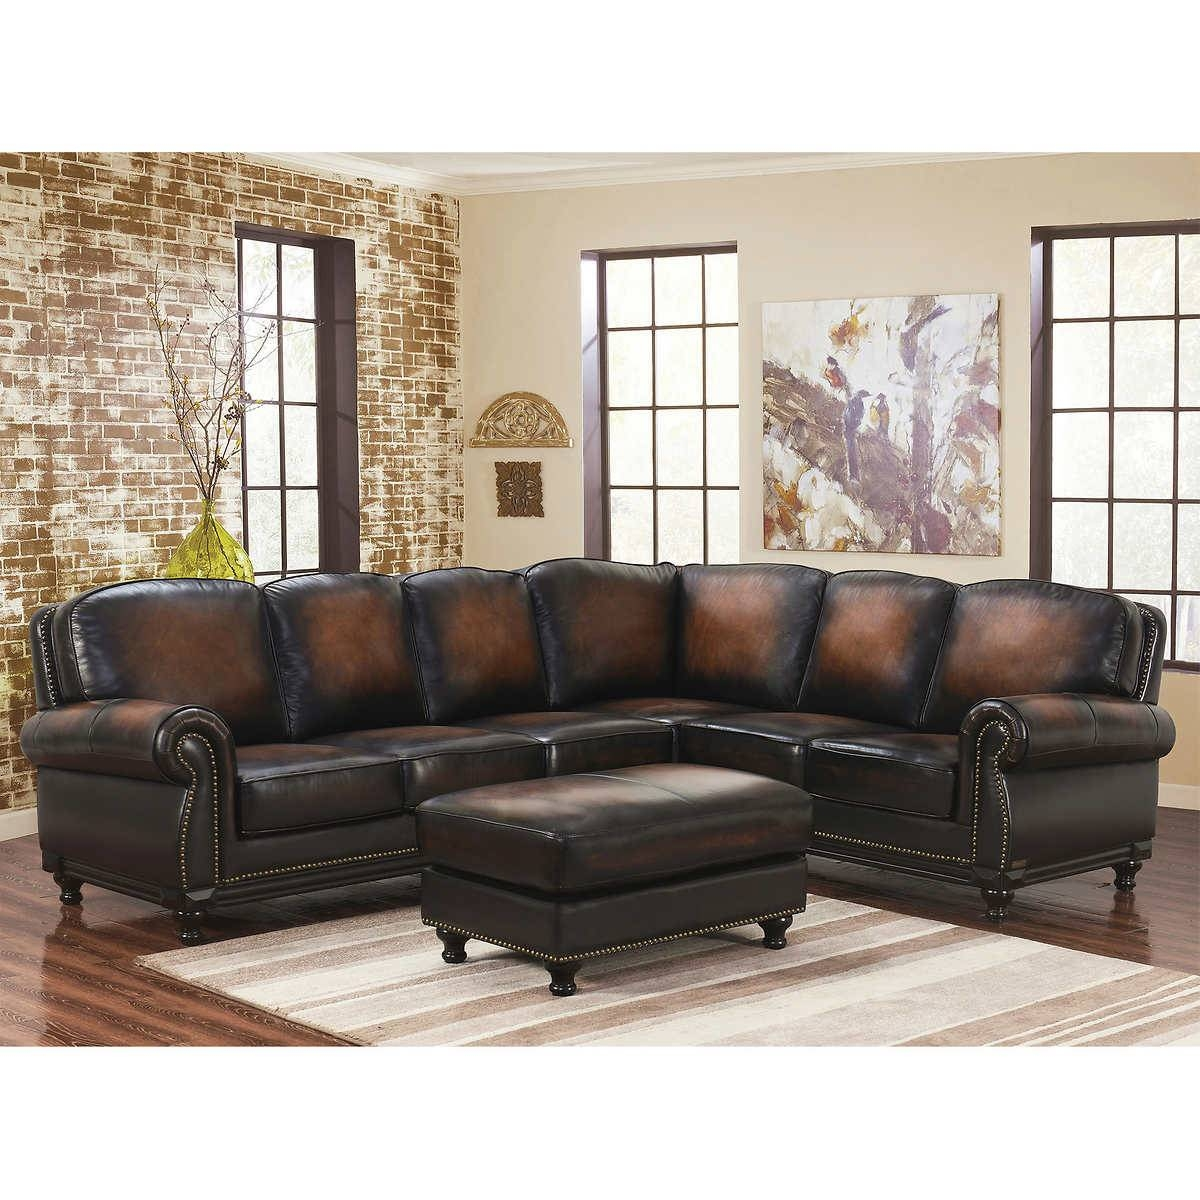 Wonderful Real Leather Sectional Sofa 47 For Faux Leather within Faux Leather Sectional Sofas (Image 25 of 25)